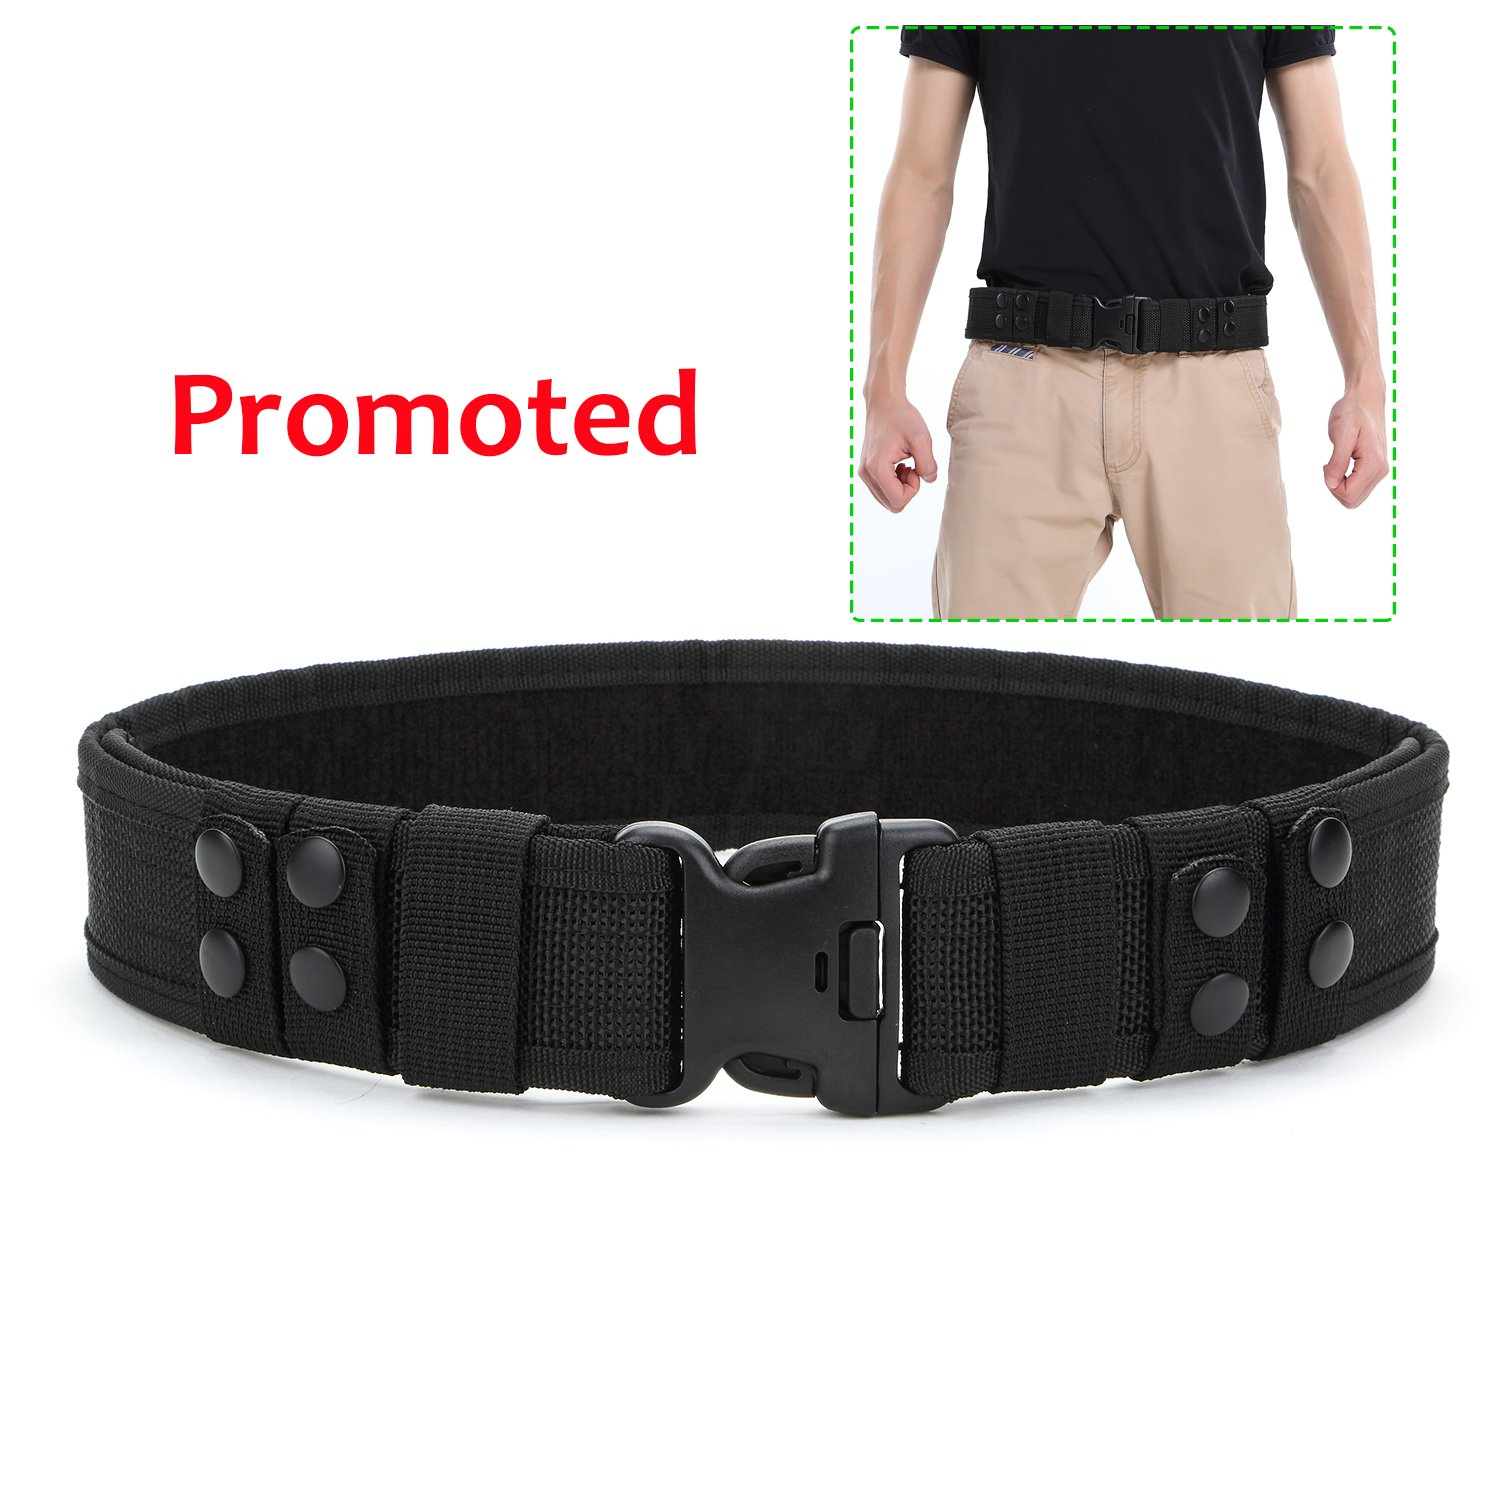 YAHILL Adjustable Equipment Accessories Black Promoted